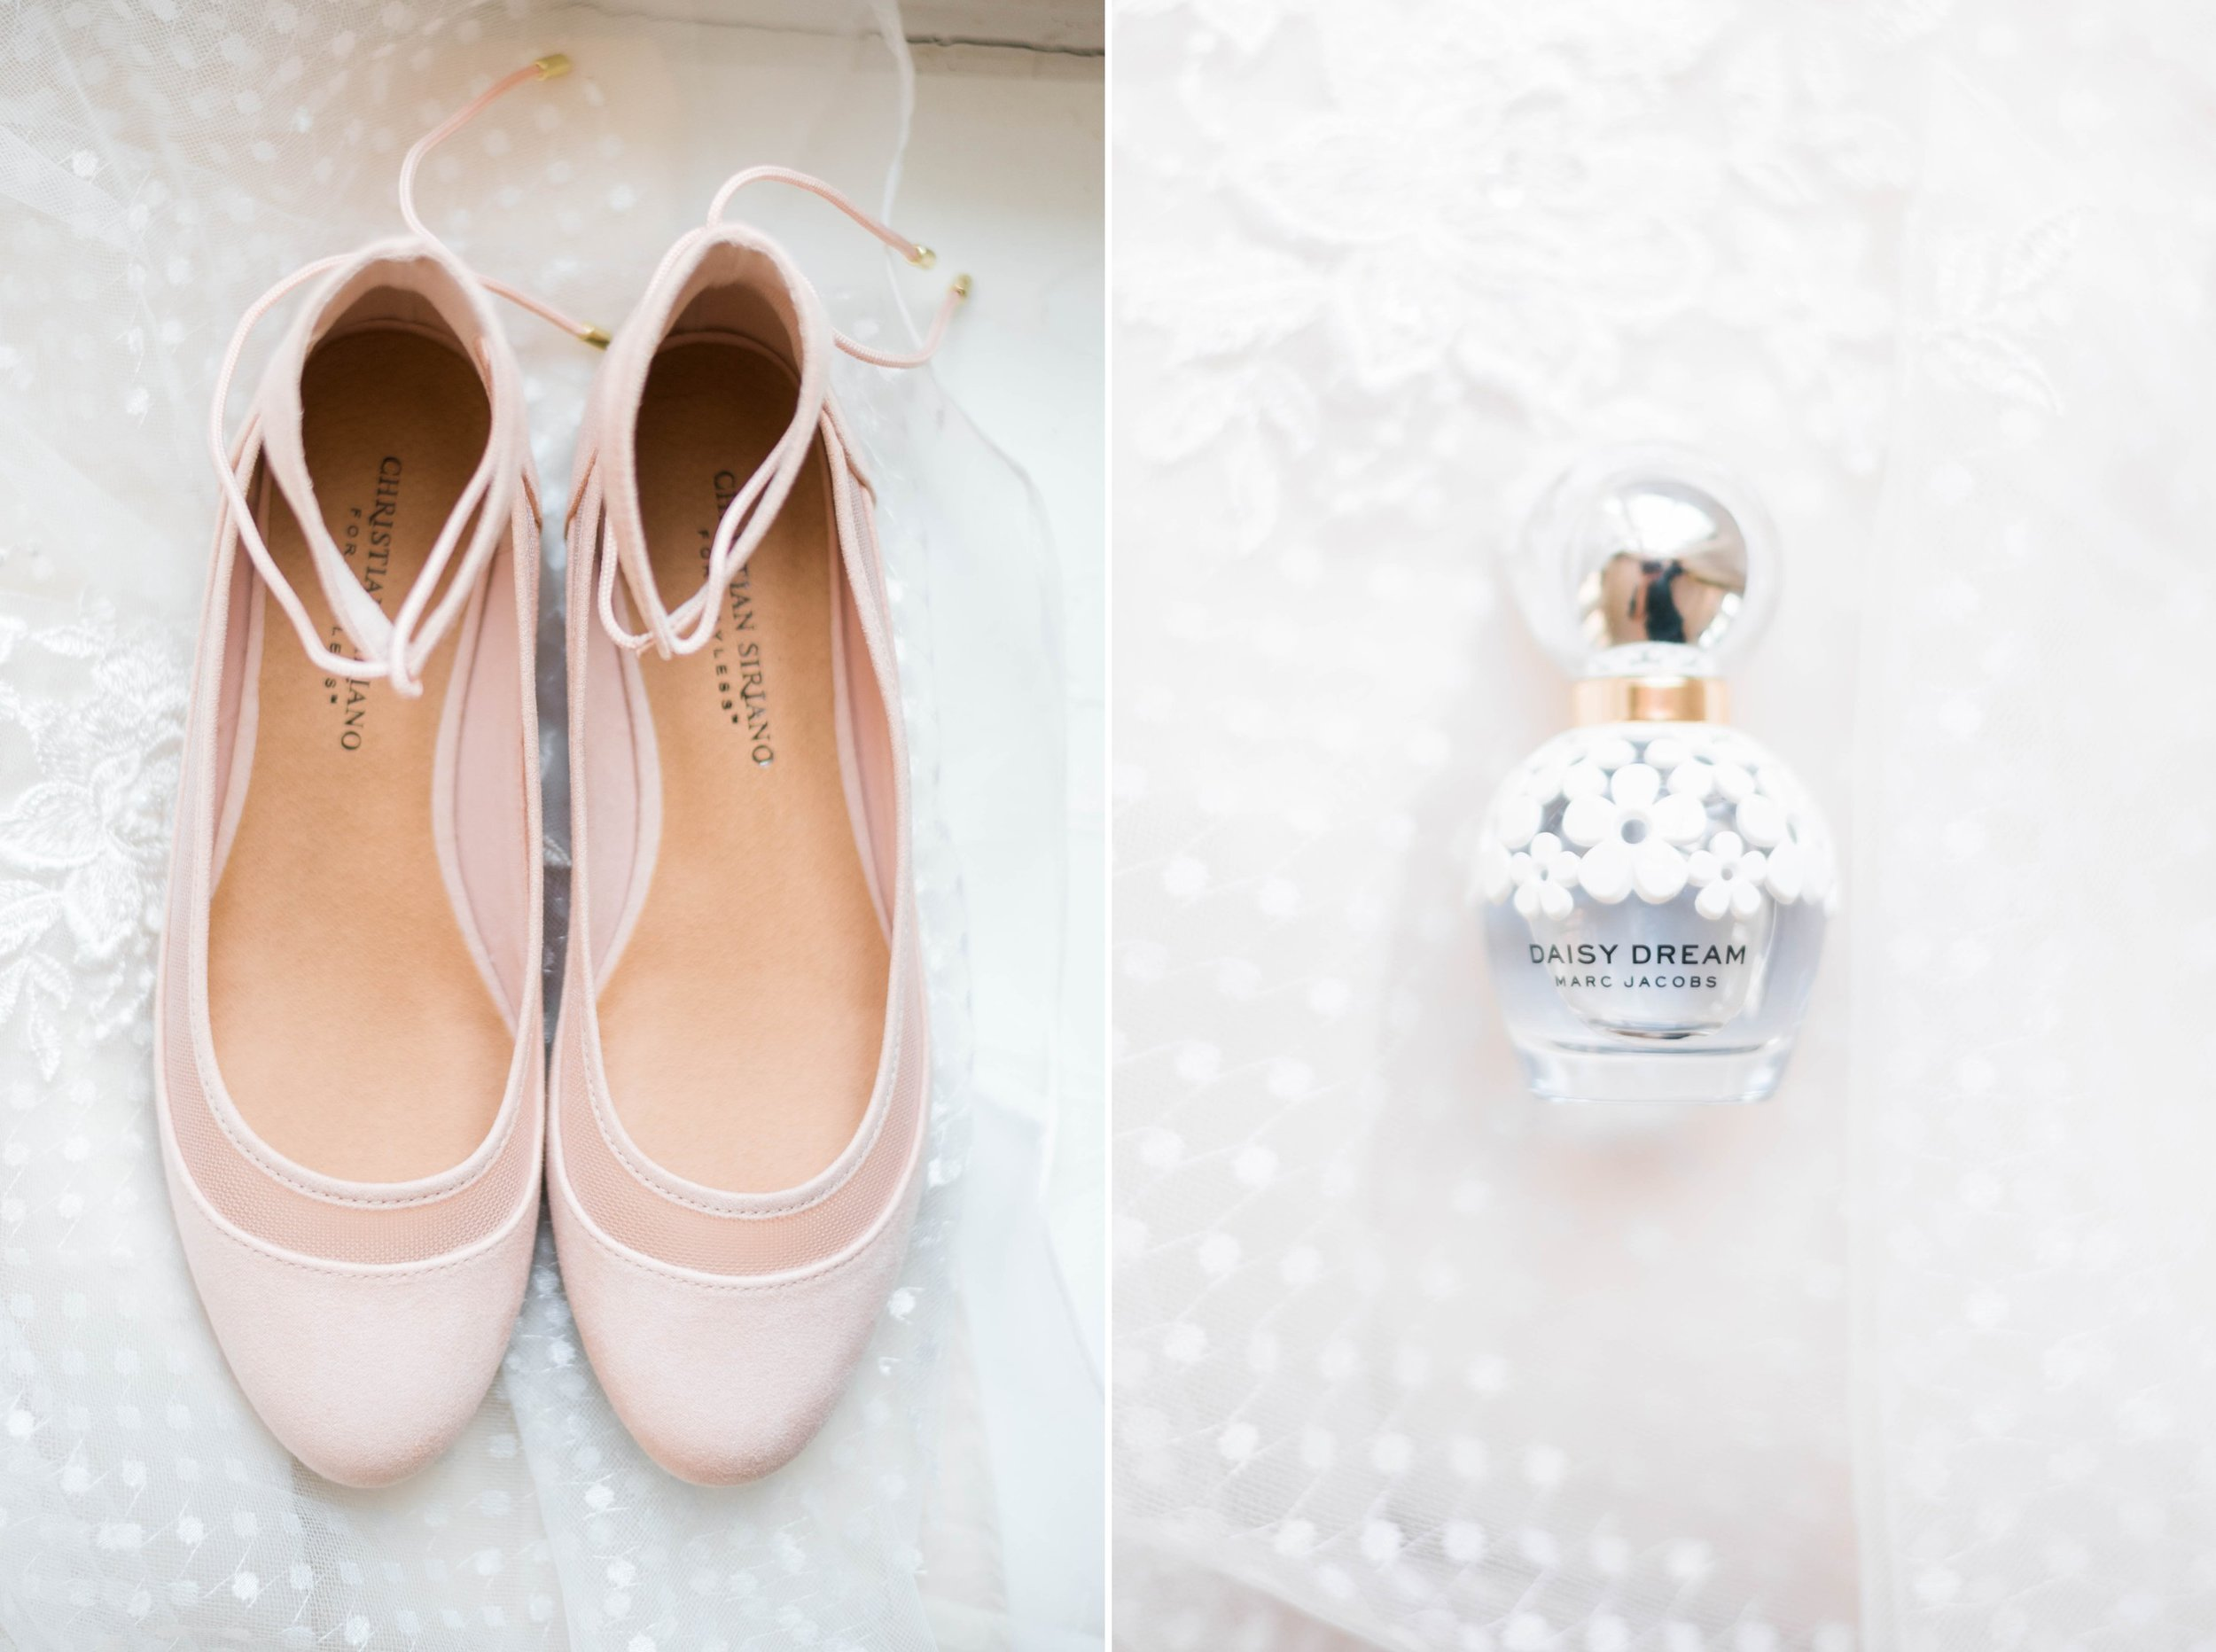 Jillian+Abi_OakridgeEstate_Wedding_VirginiaWeddingPhotographer_SpringWedding 1.jpg